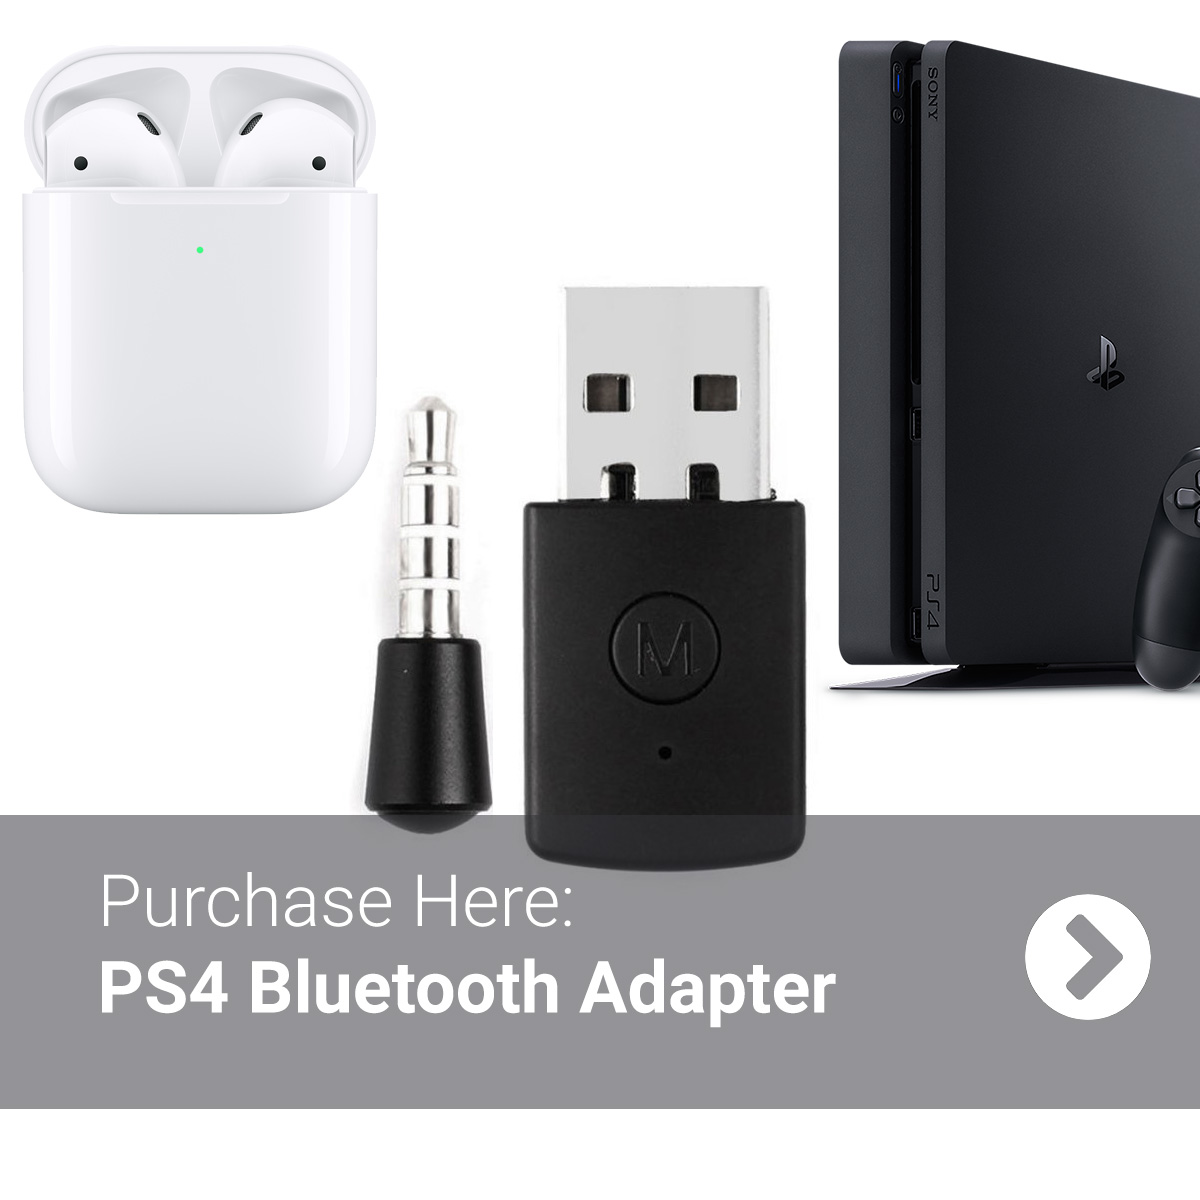 ps4 bluetooth adapter